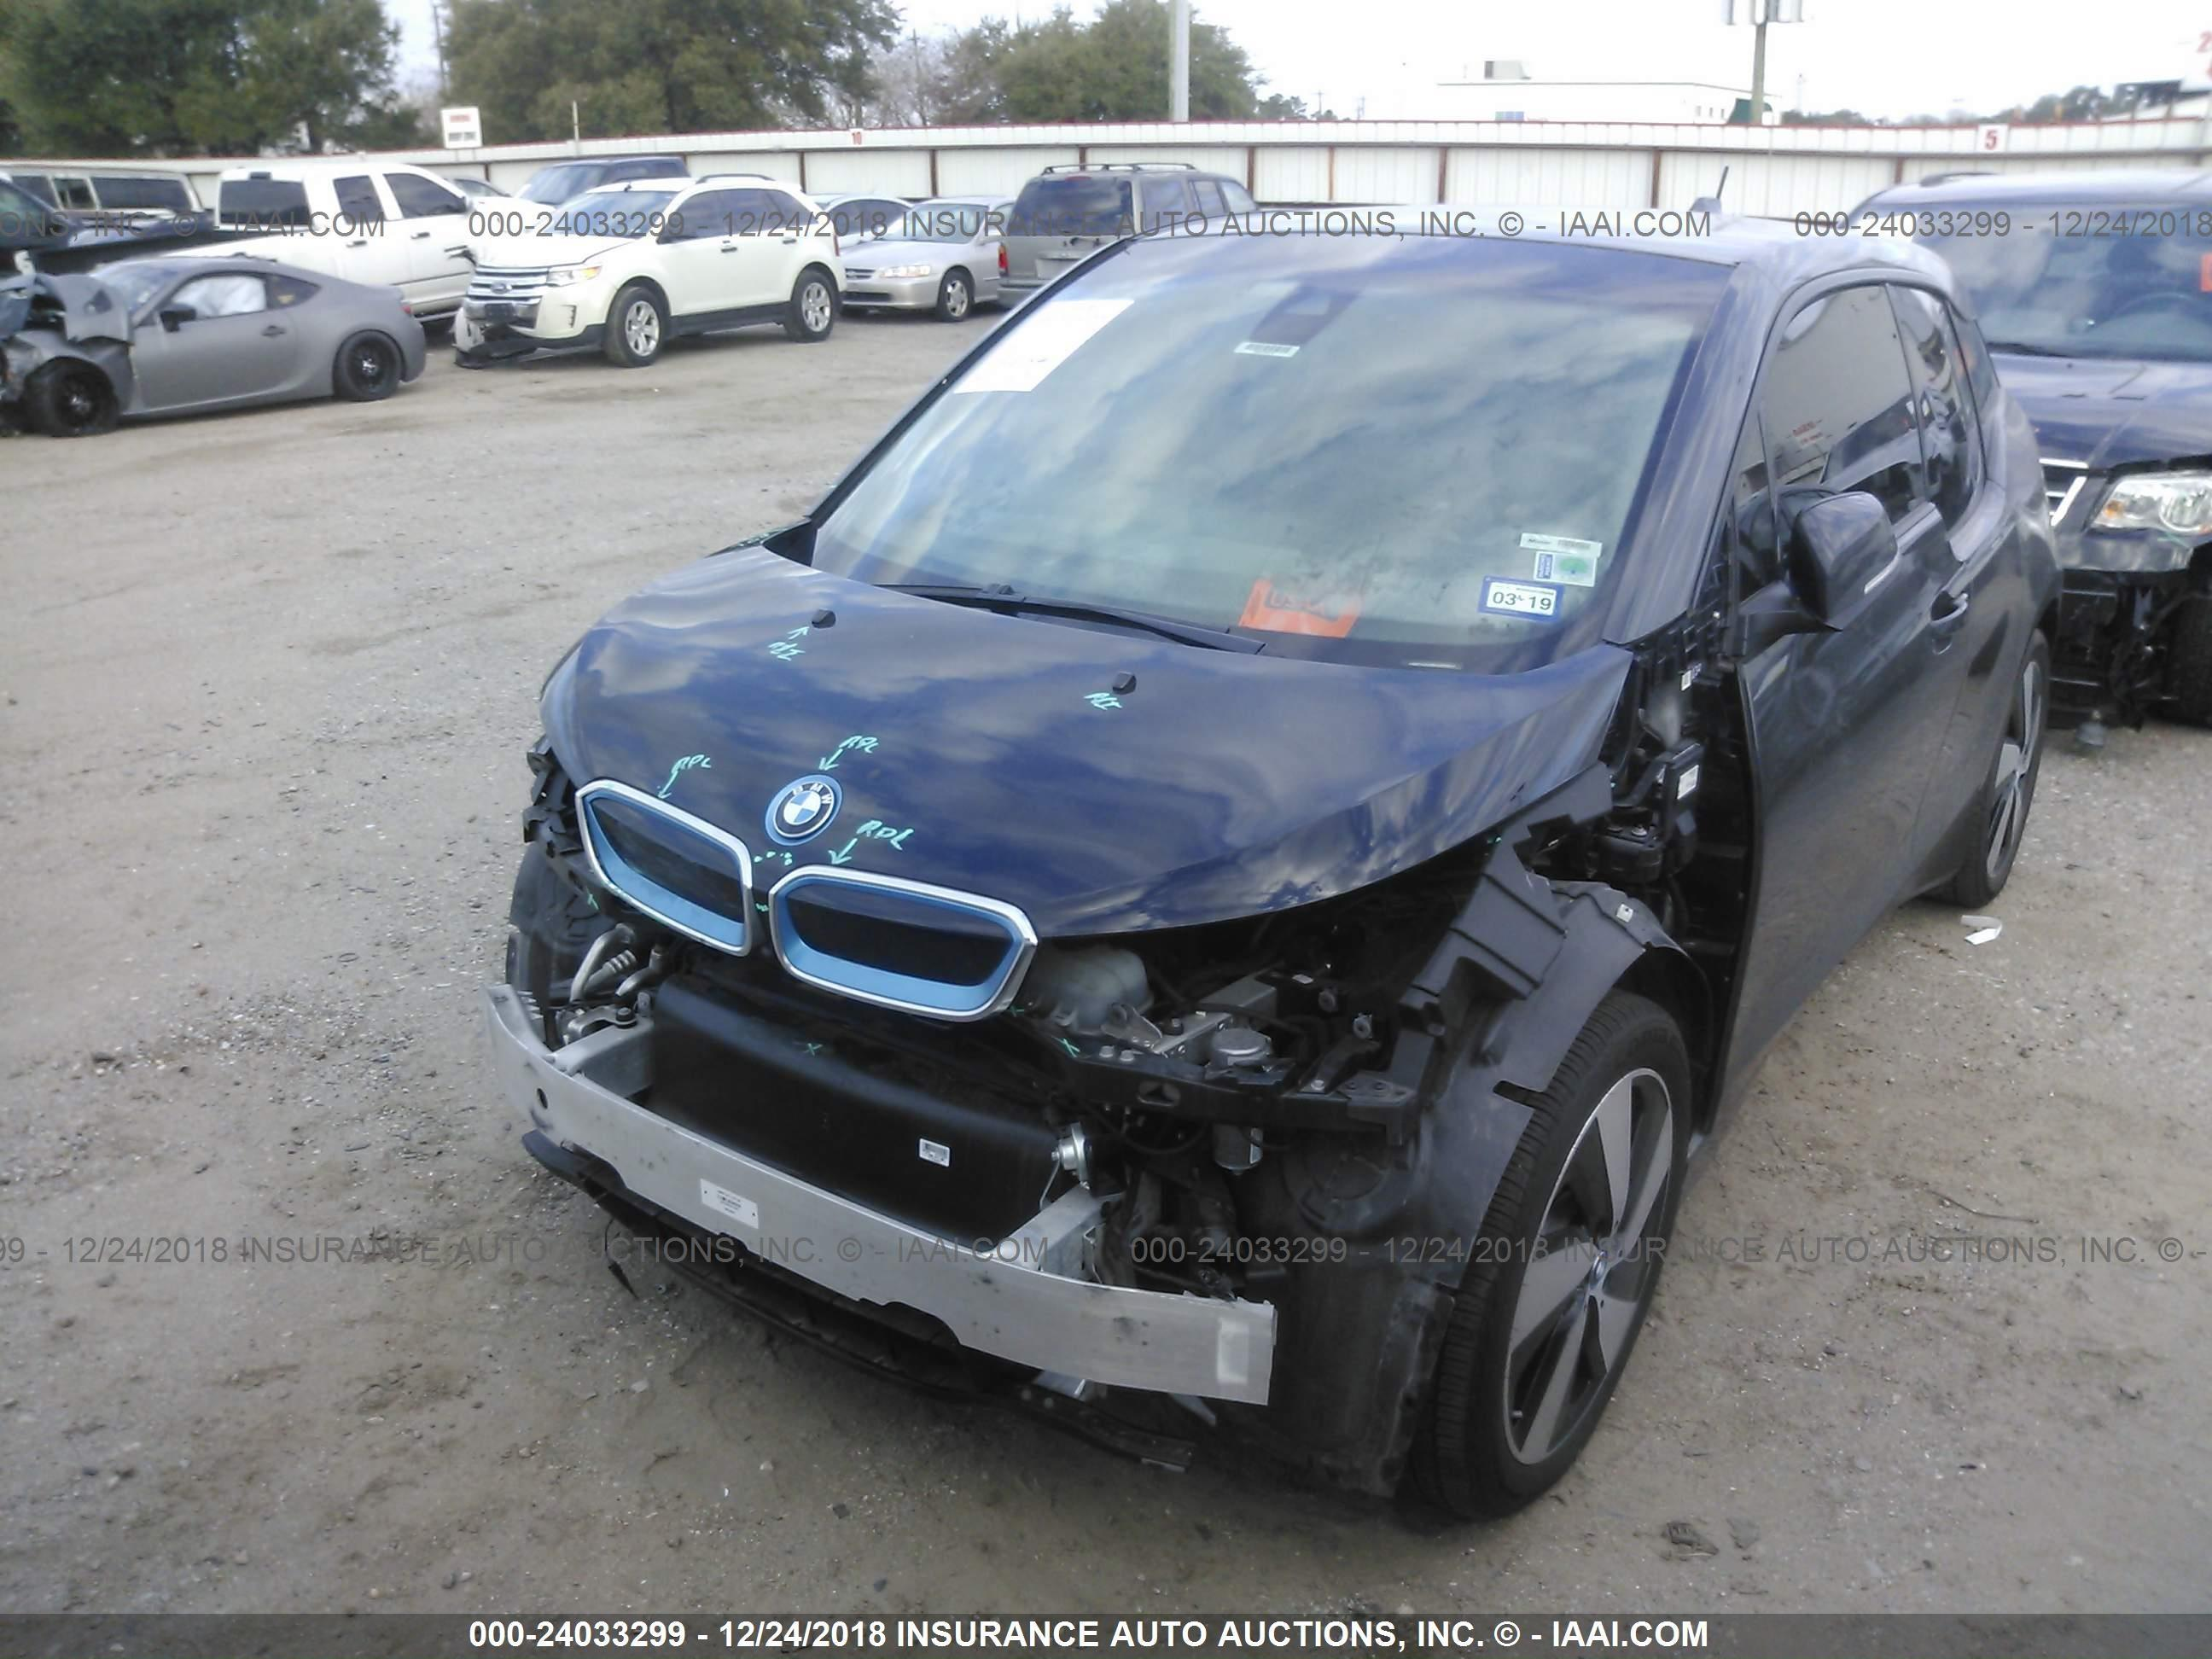 Iaai Houston North >> Wby1z2c58ev284953 2014 Bmw I3 5300 Autoastat Statistic